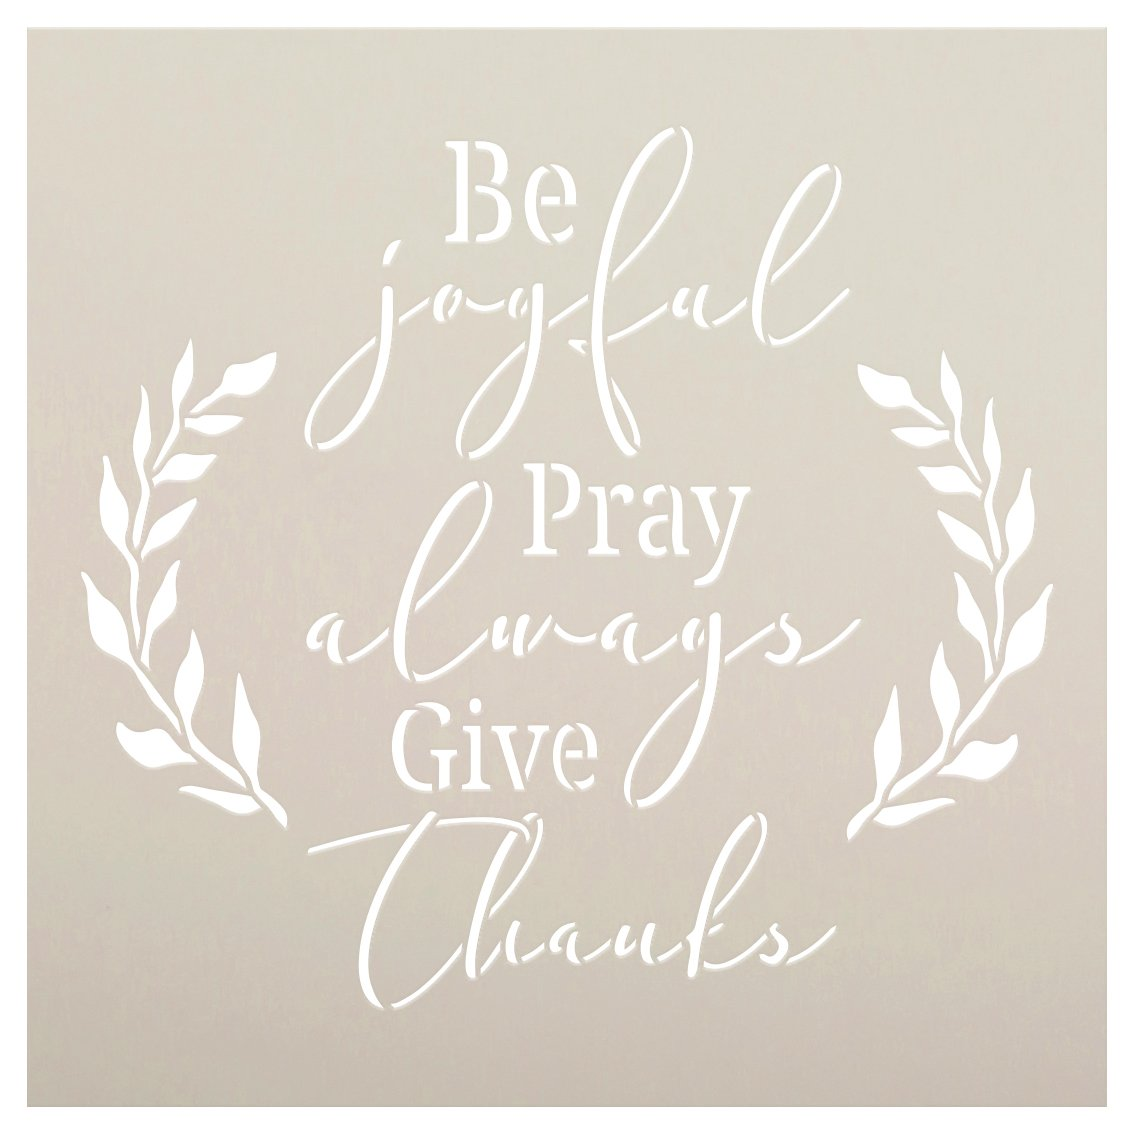 Be Joyful Pray Always Give Thanks Stencil by StudioR12 | Craft DIY Inspirational Home Decor | Paint Wood Sign | Reusable Mylar Template | Select Size